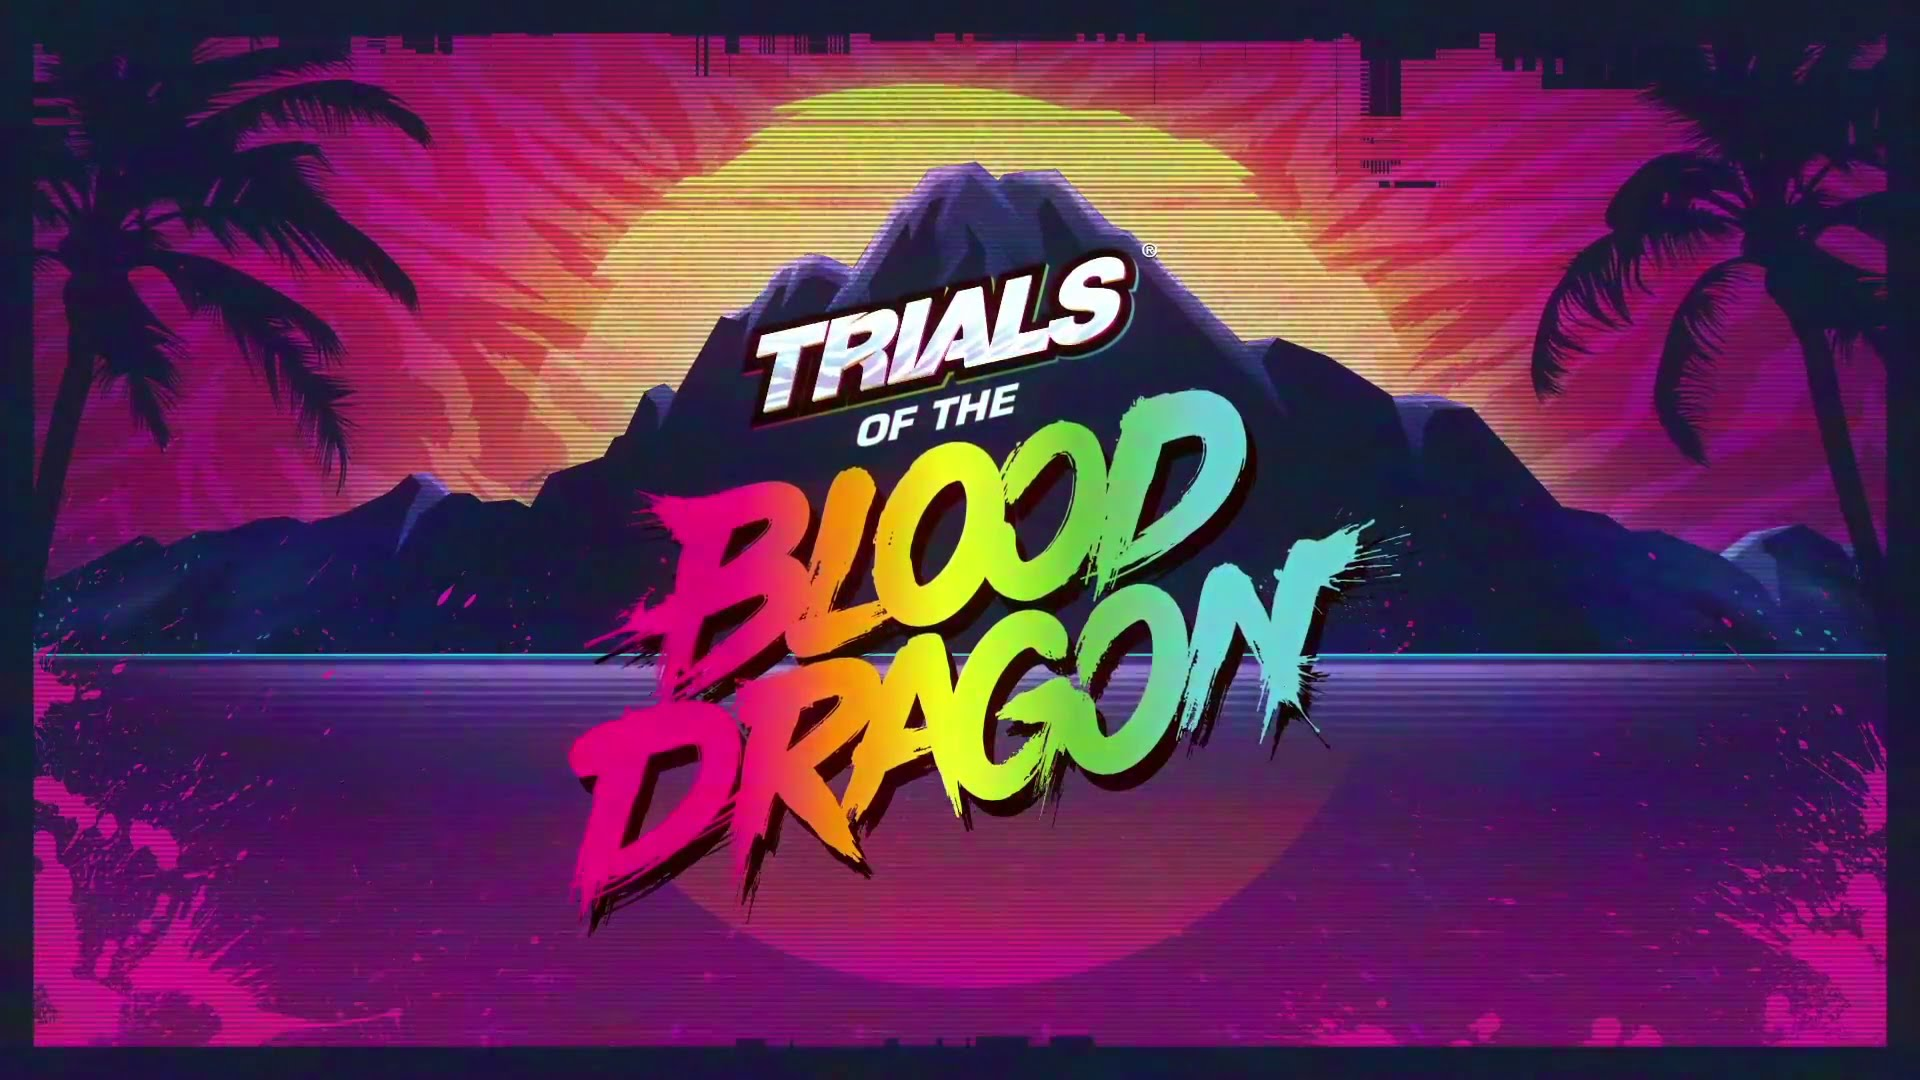 High Resolution Wallpaper | Trials Of The Blood Dragon 1920x1080 px